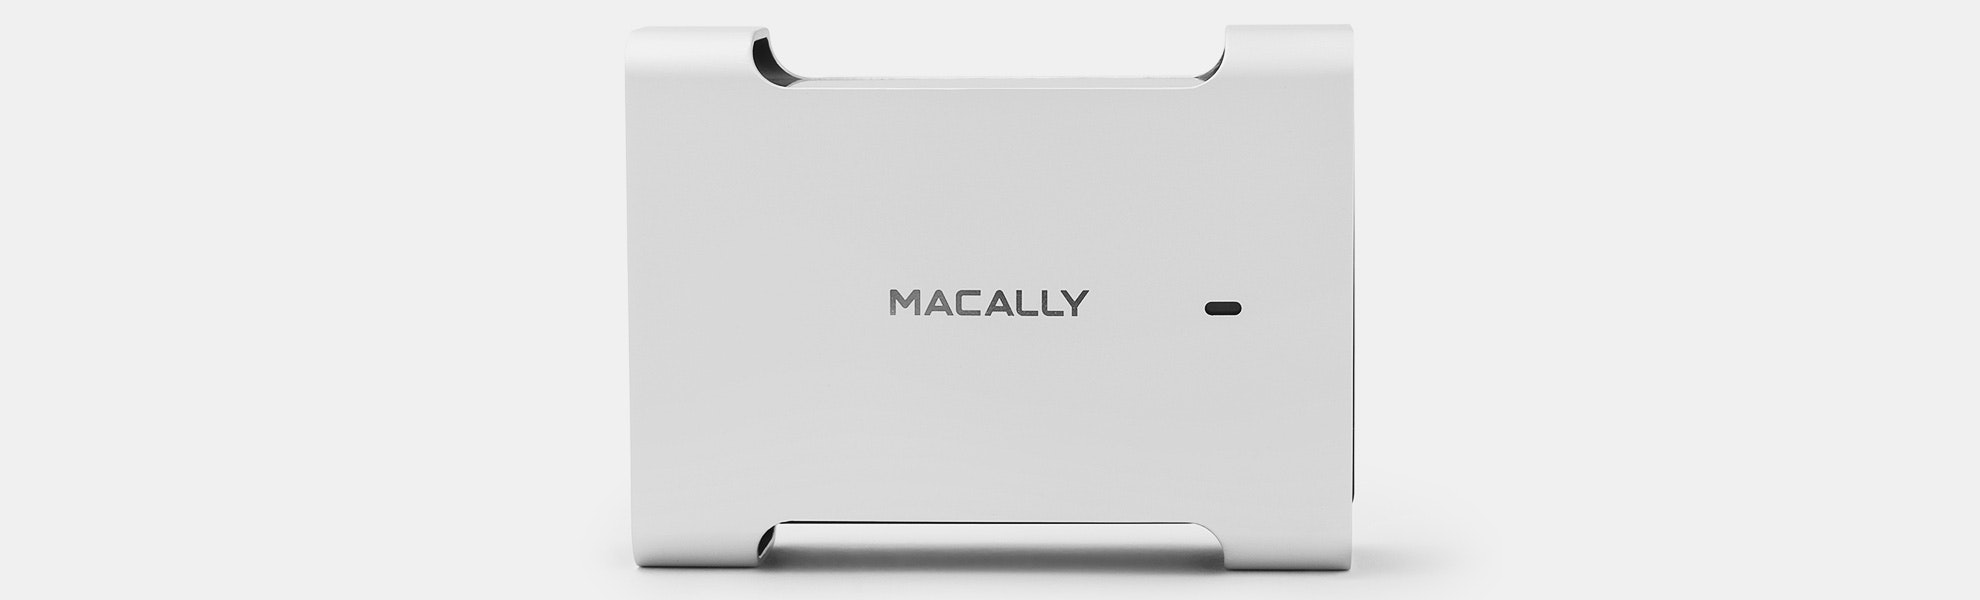 Macally MacBook USB-C Magnetic Charger